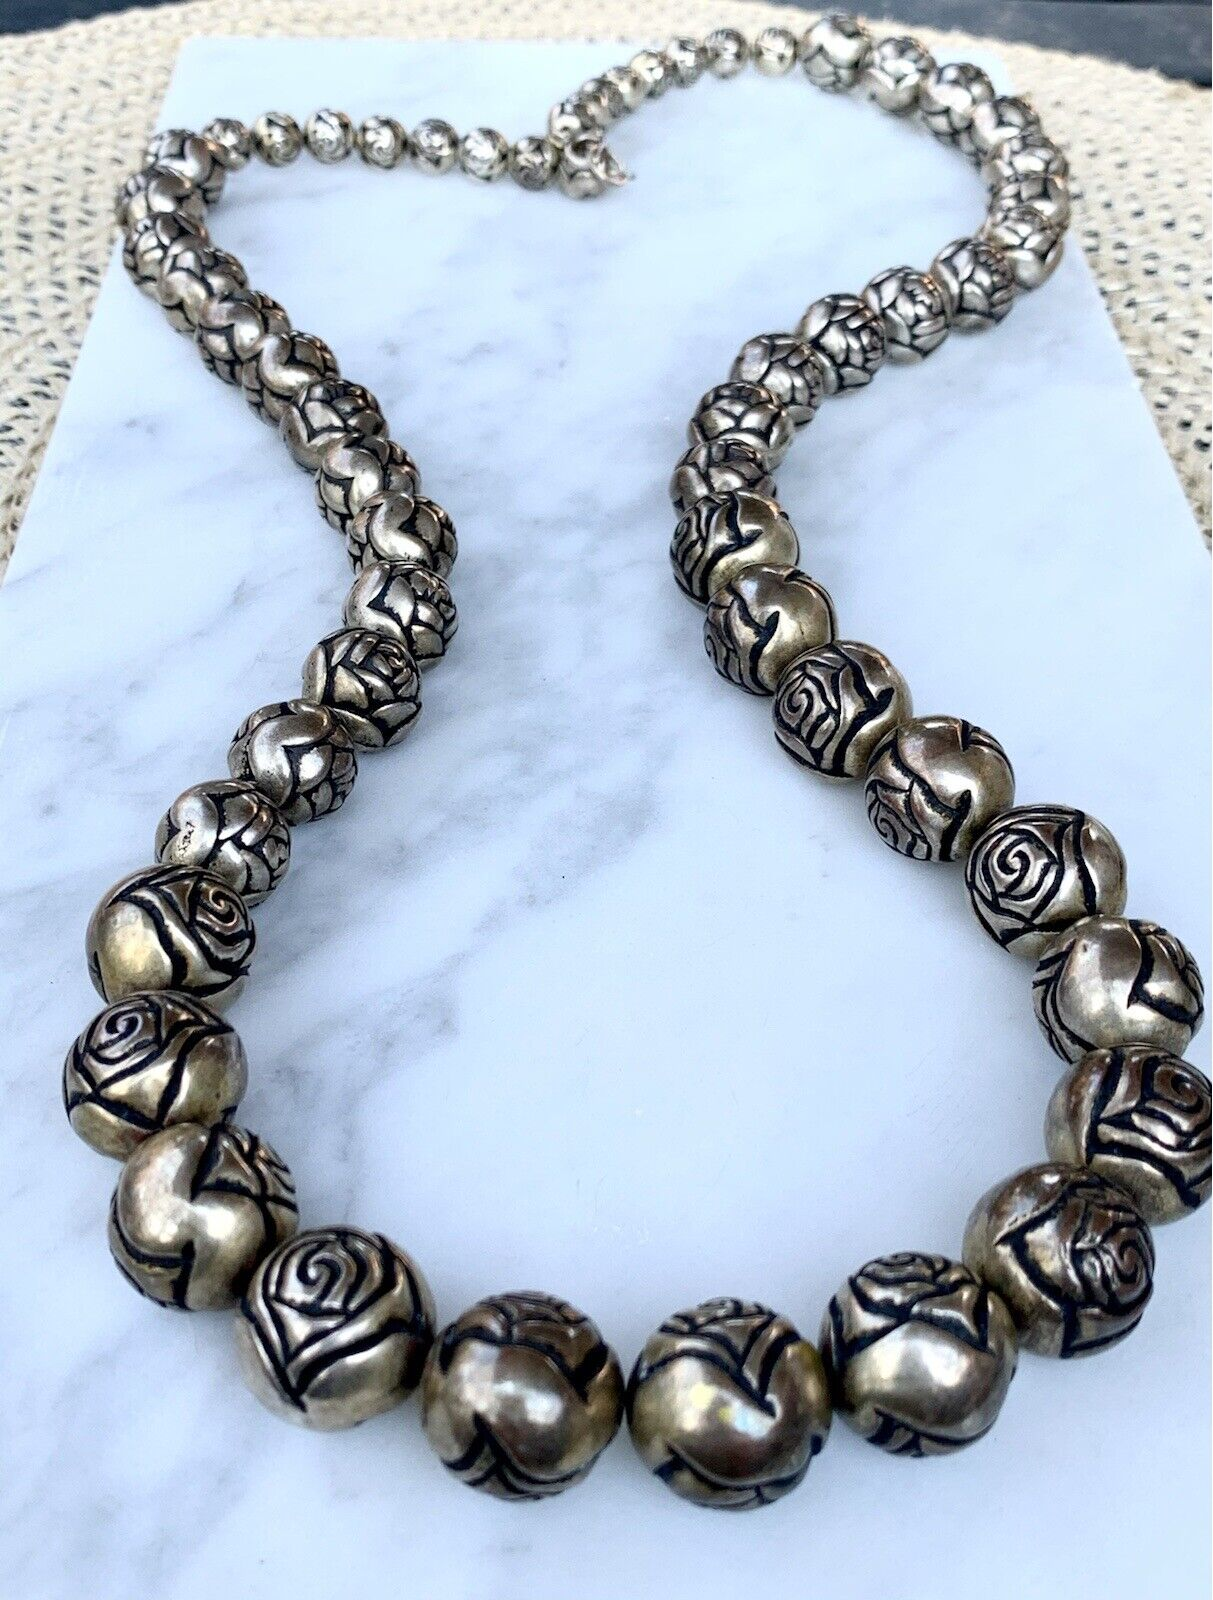 Silver Rose PendantHandcrafted Silver Necklace925 SilverVintage Silver NeclacePendant with ChainWomens Silver NecklaceGift for Her